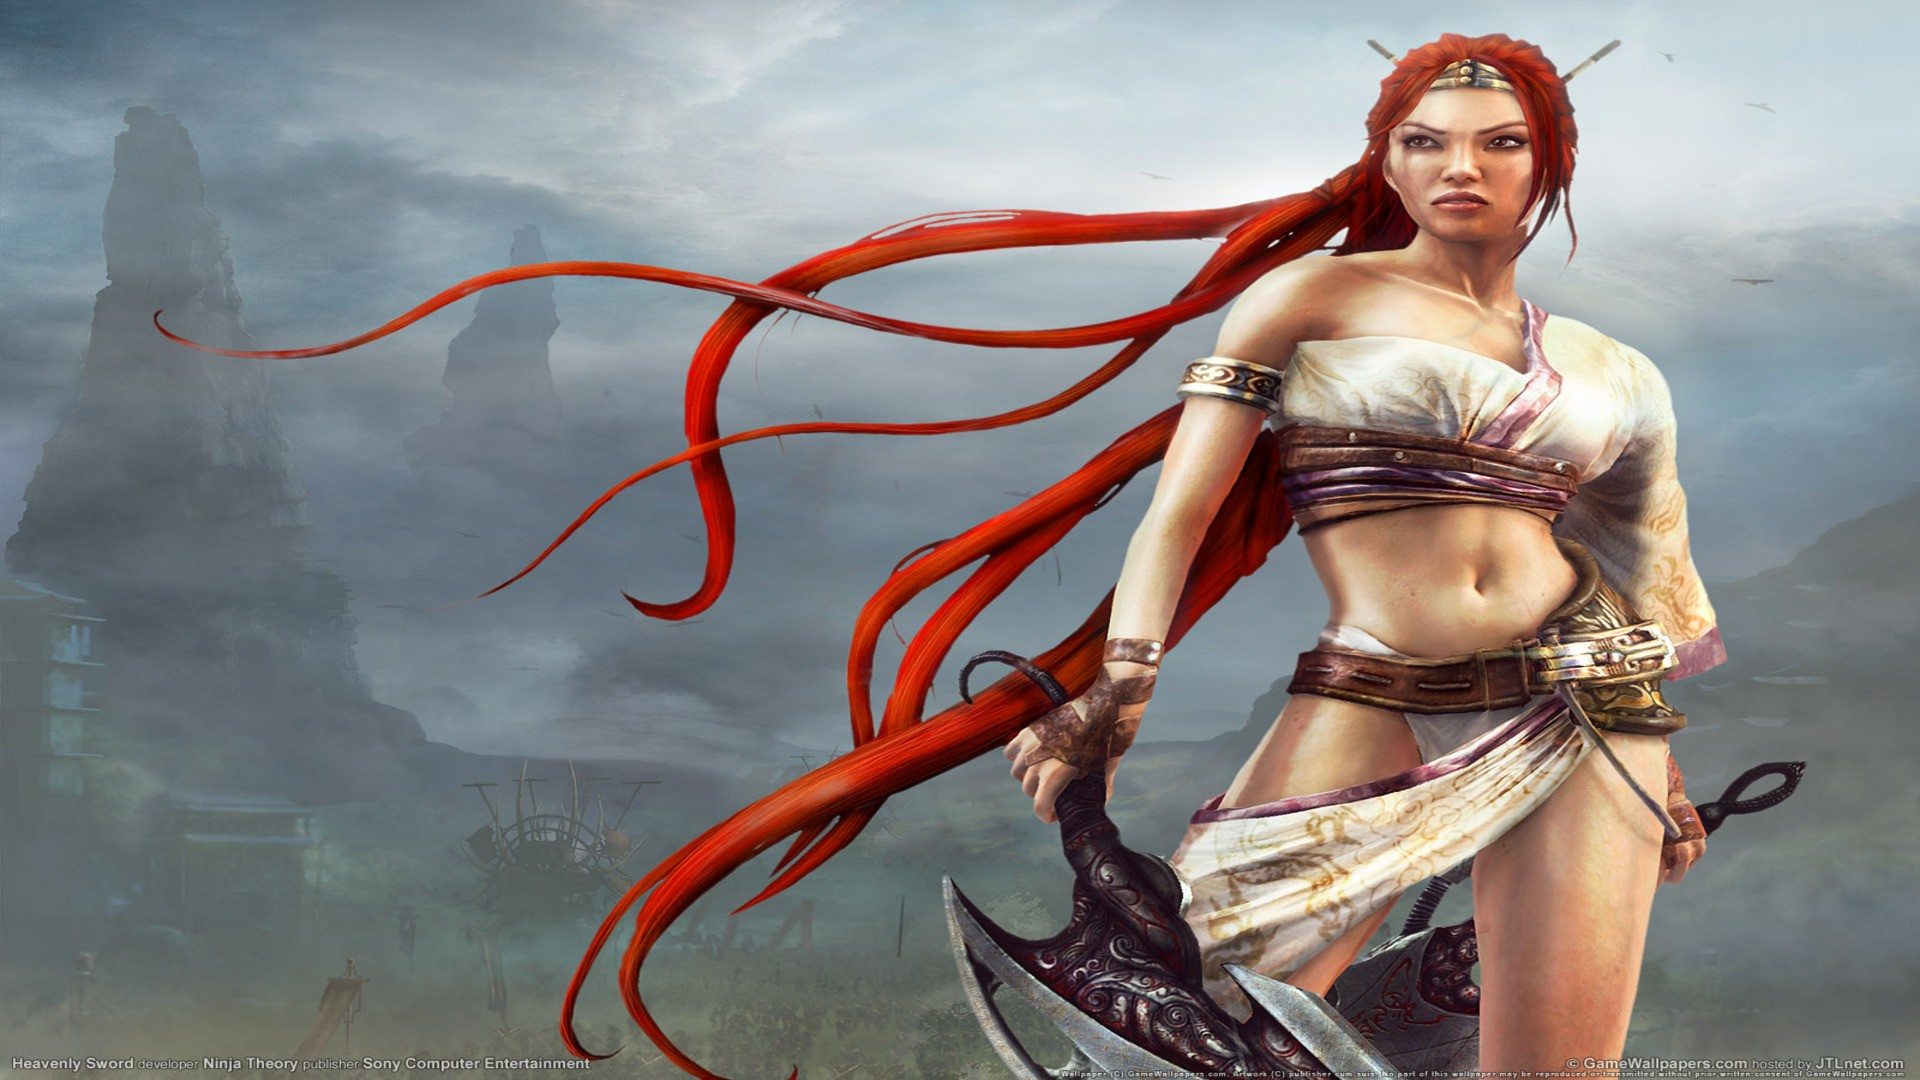 Heavenly Sword Film's First Trailer Released